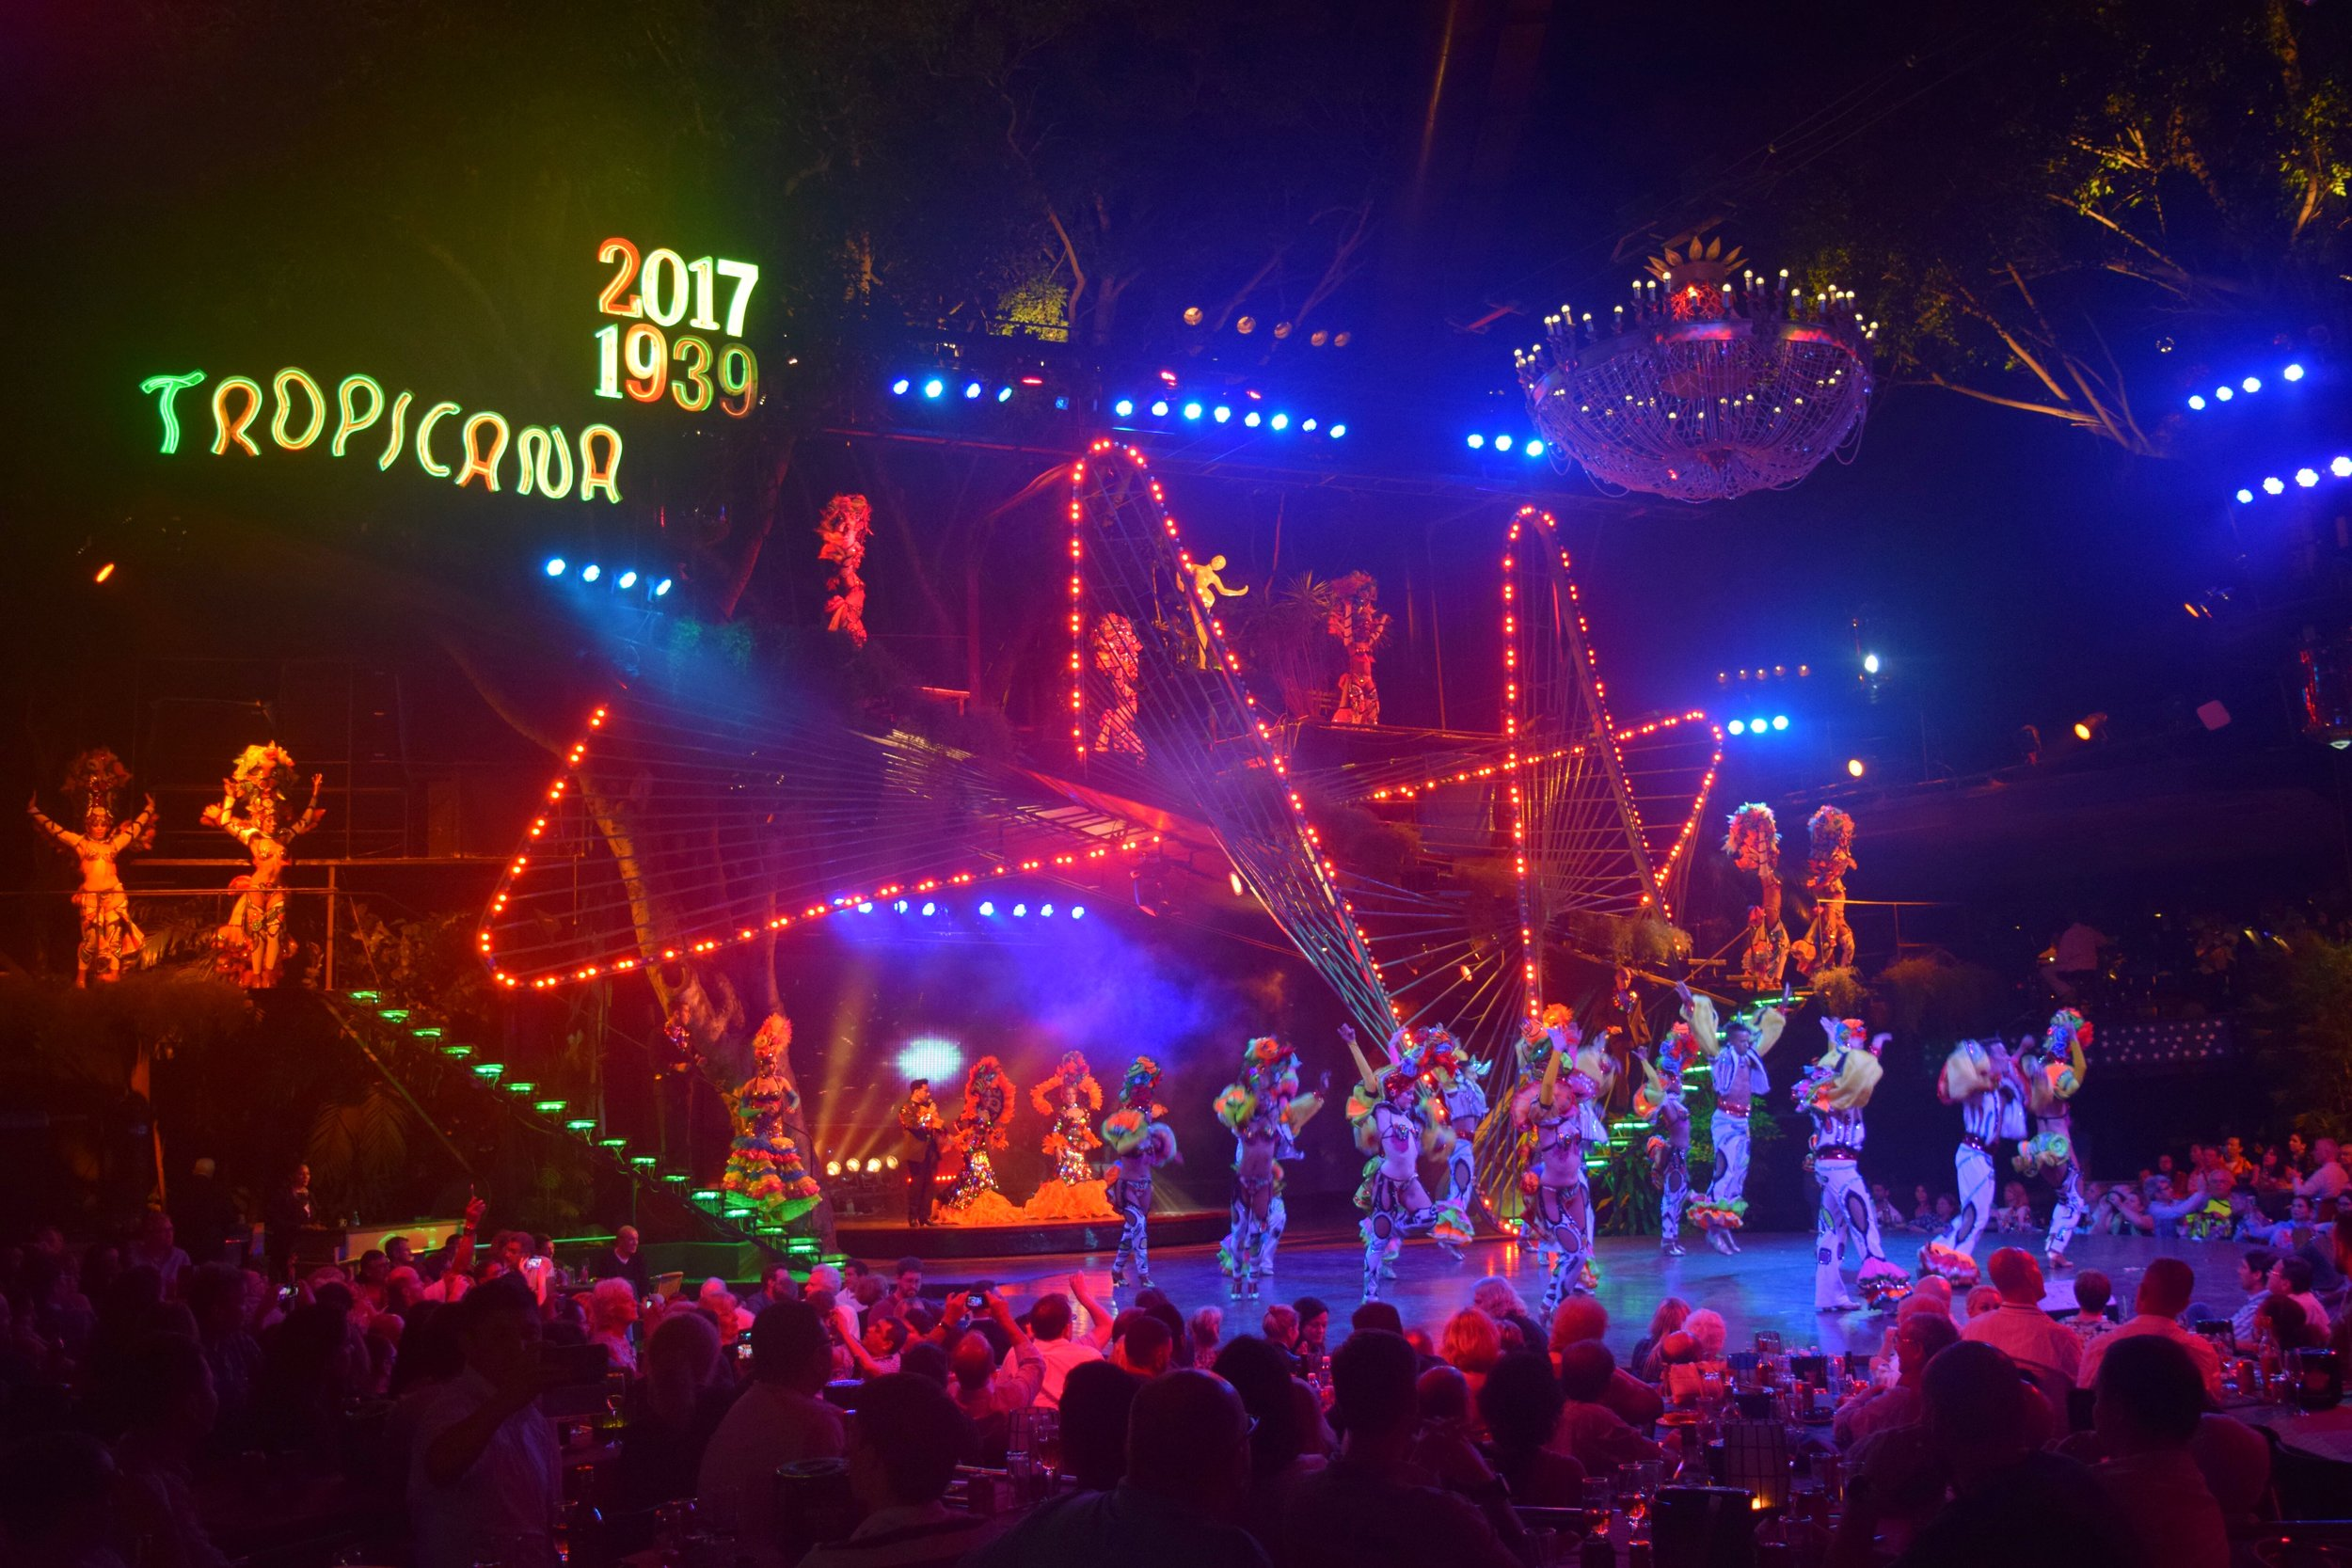 The tropicana is one of the best shows to see while in Havana Cuba - Tessa Juliette | http://travelwheretonext.com